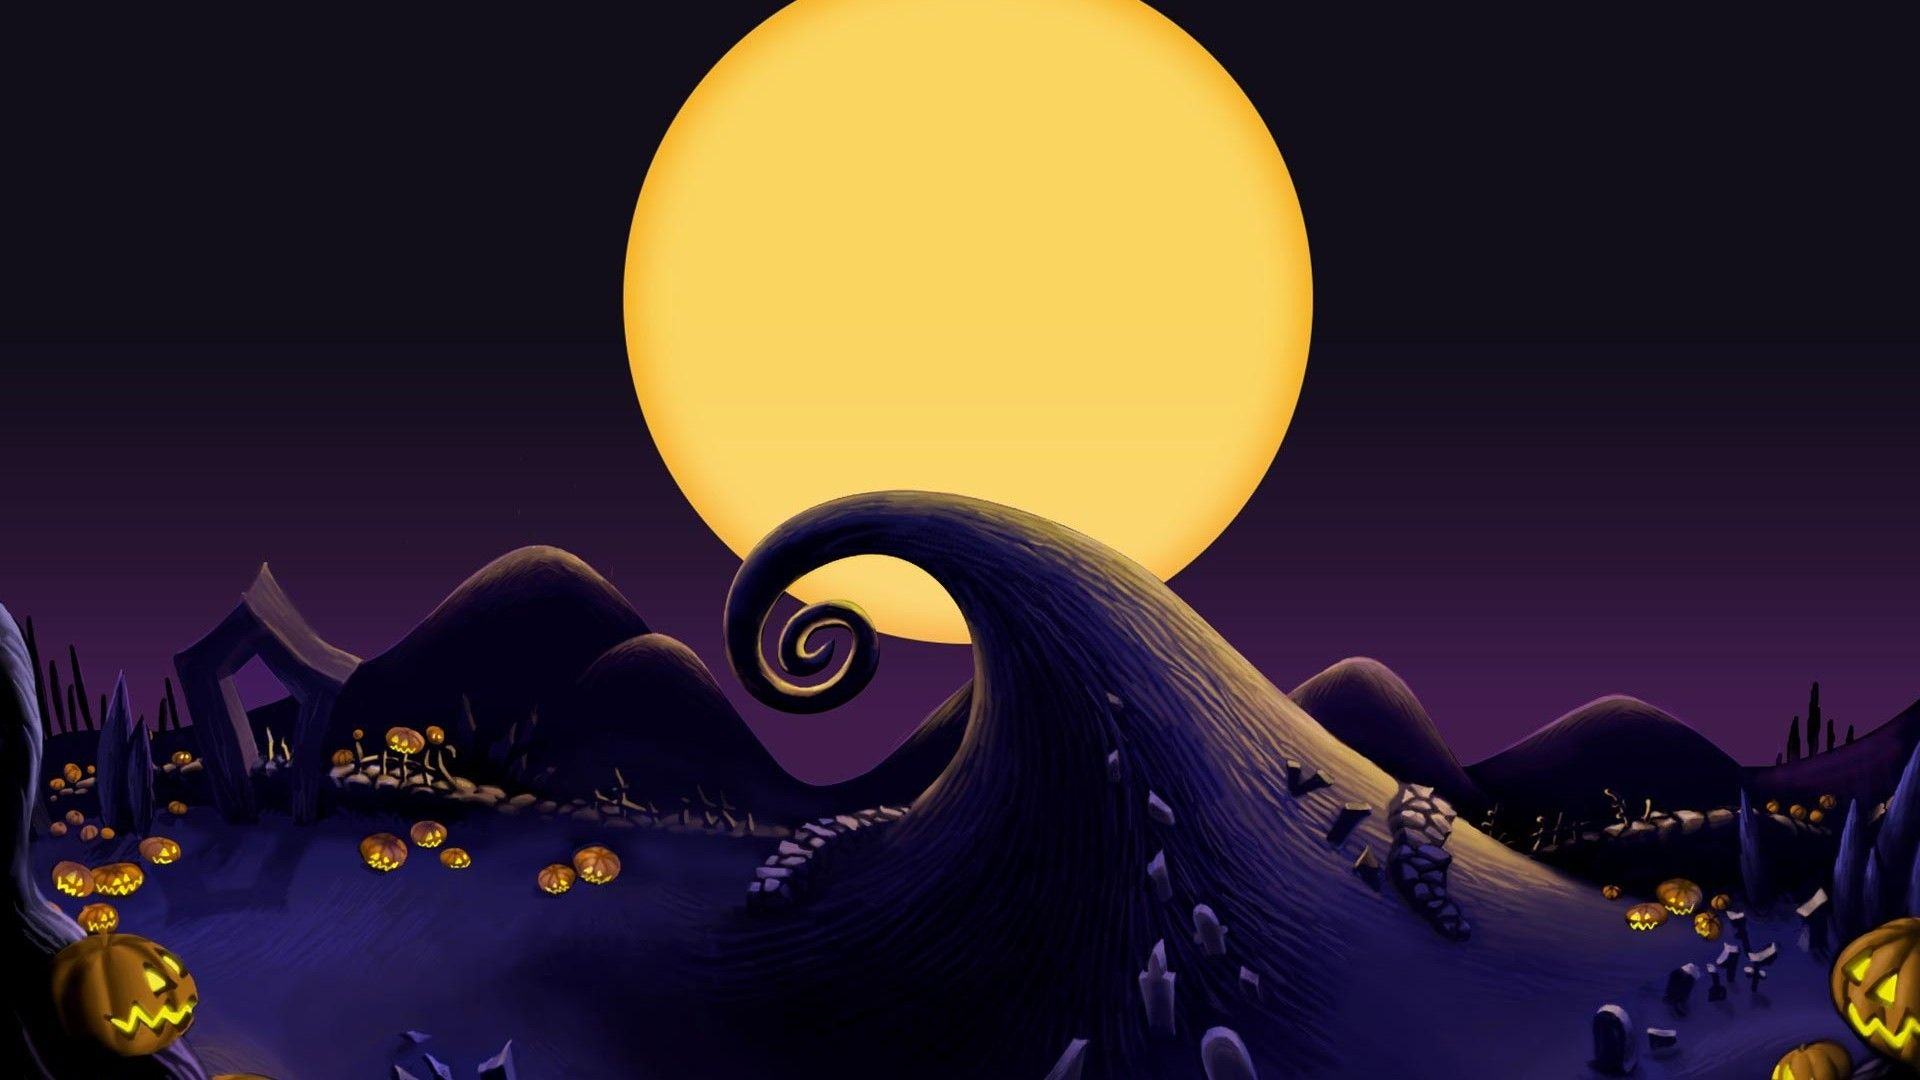 The Nightmare Before Christmas Wallpapers   Picseriocom 1920x1080